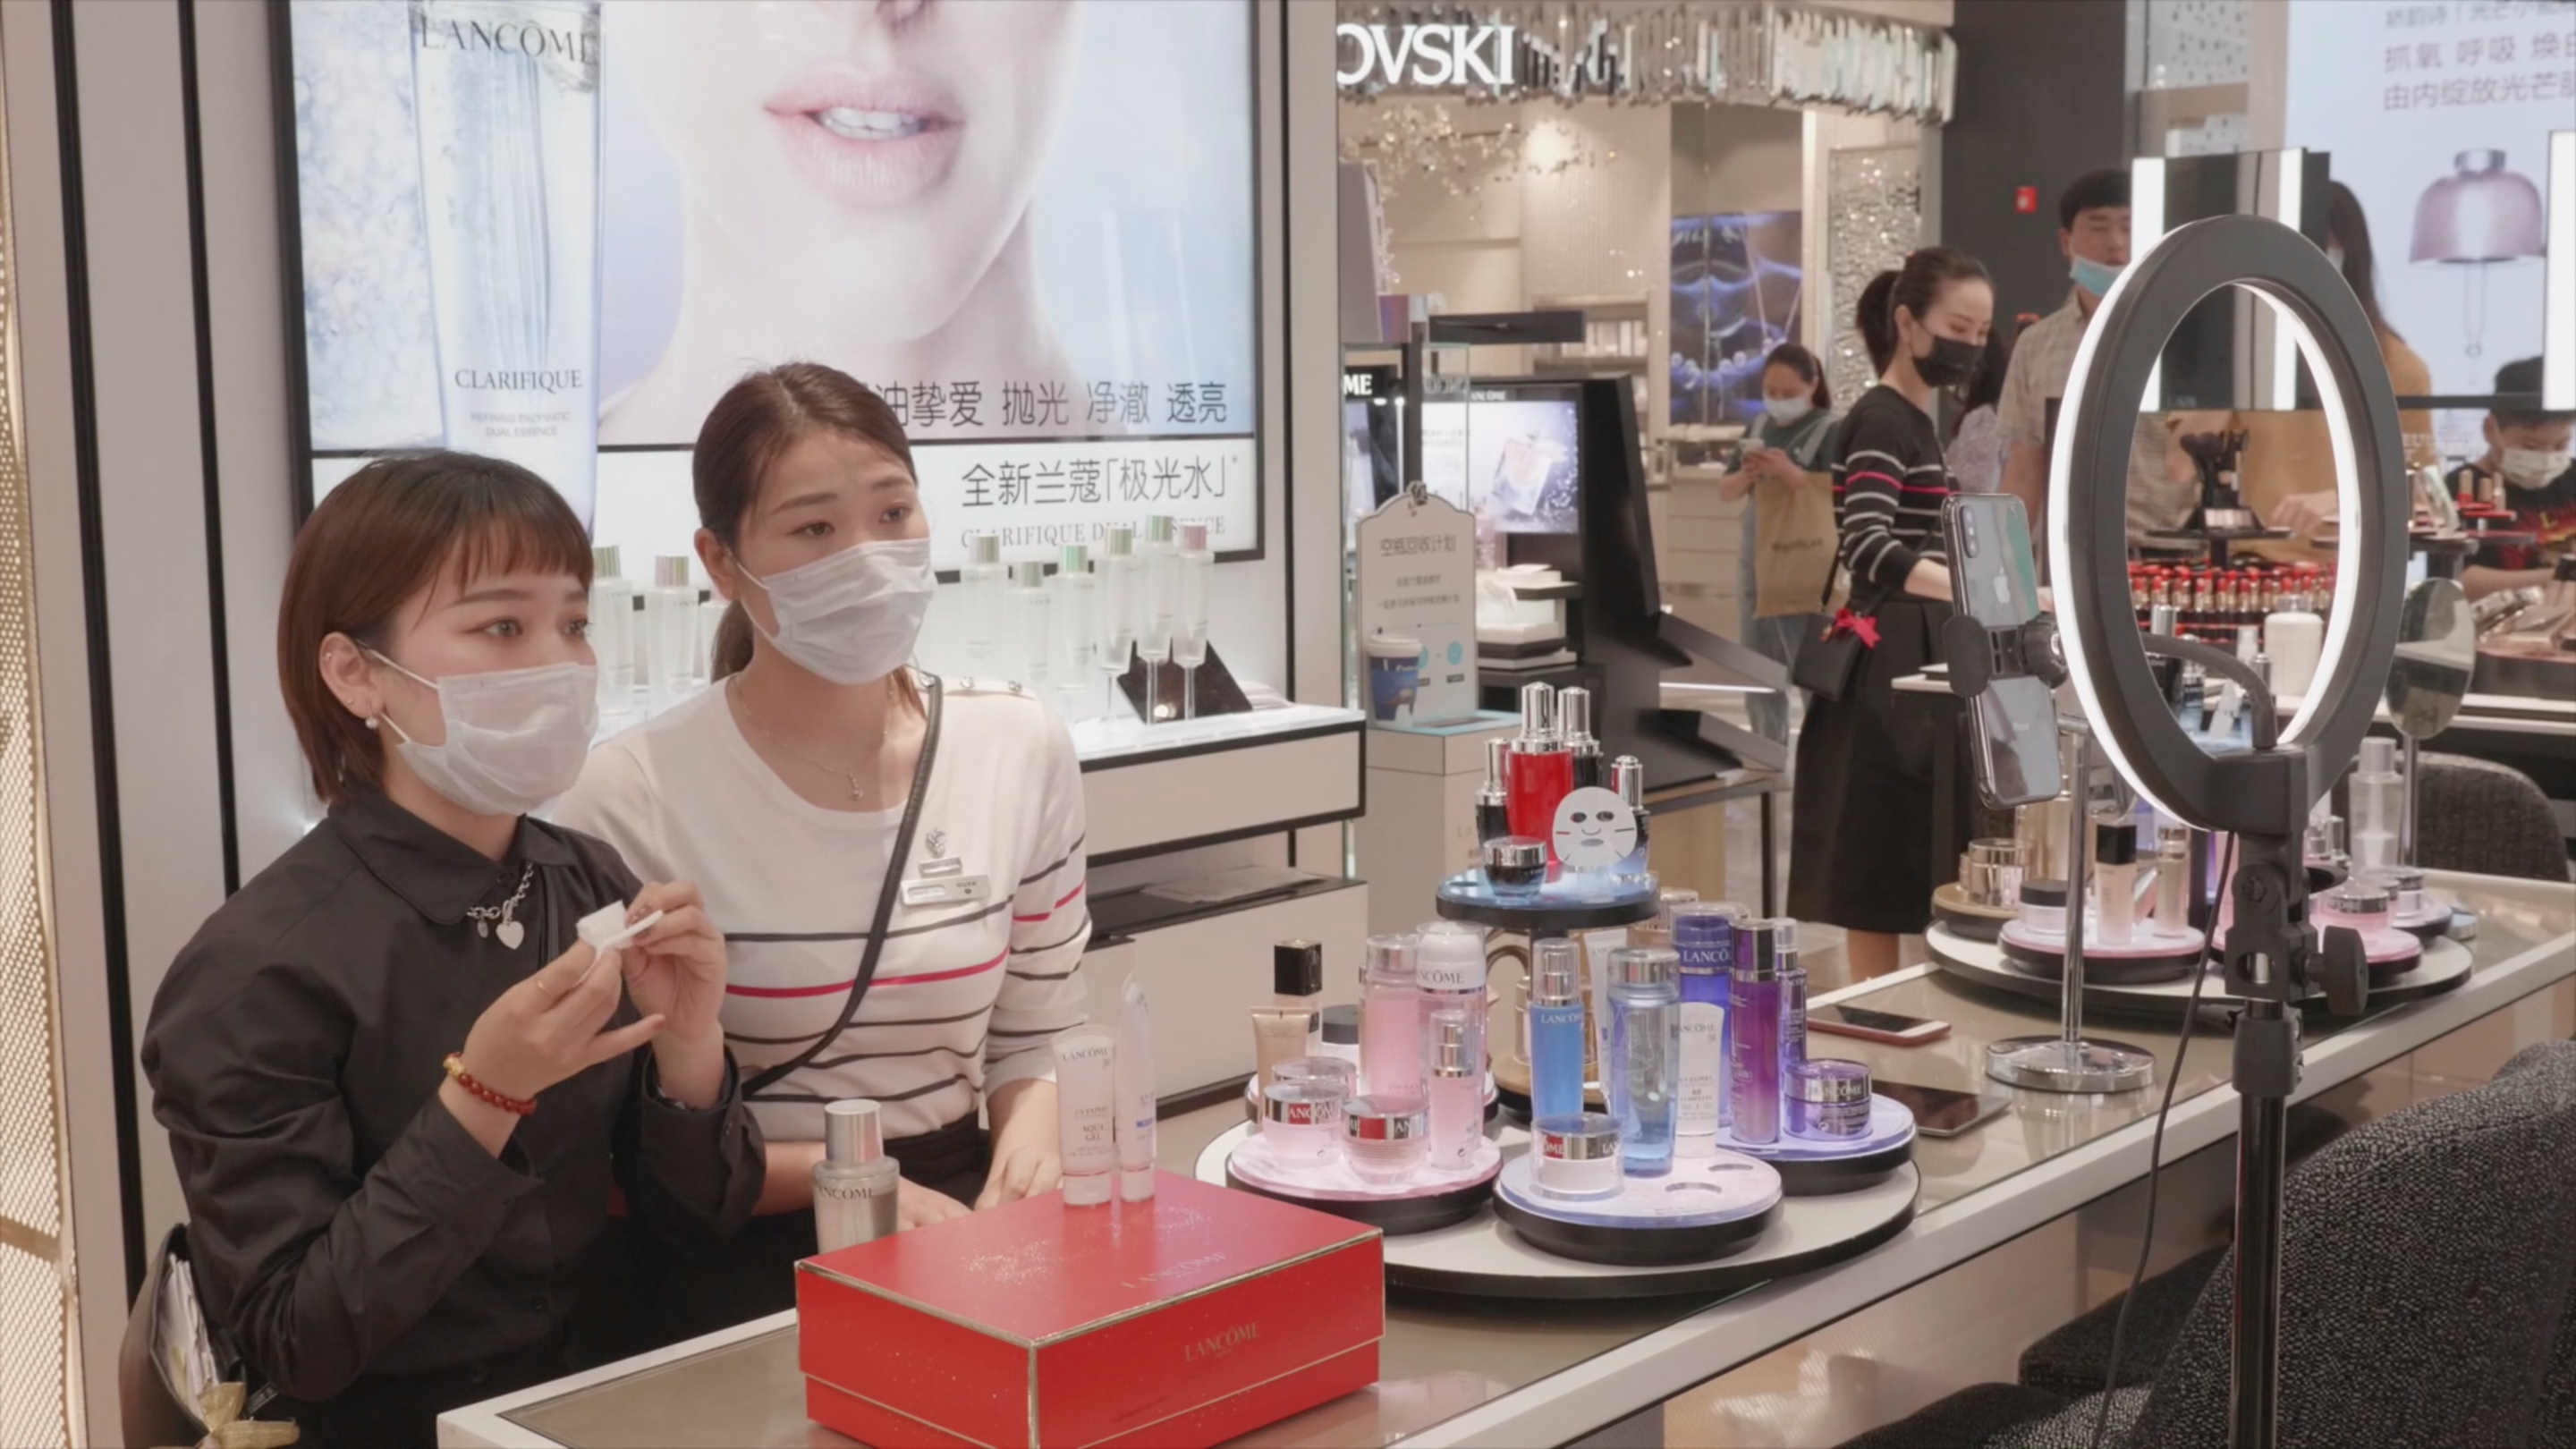 Live streaming played a vital role in keeping business afloat for Intime during the Coronavirus outbreak in China. Here, two live streamers showcased beauty products at Lancôme's counter inside an Intime department store.